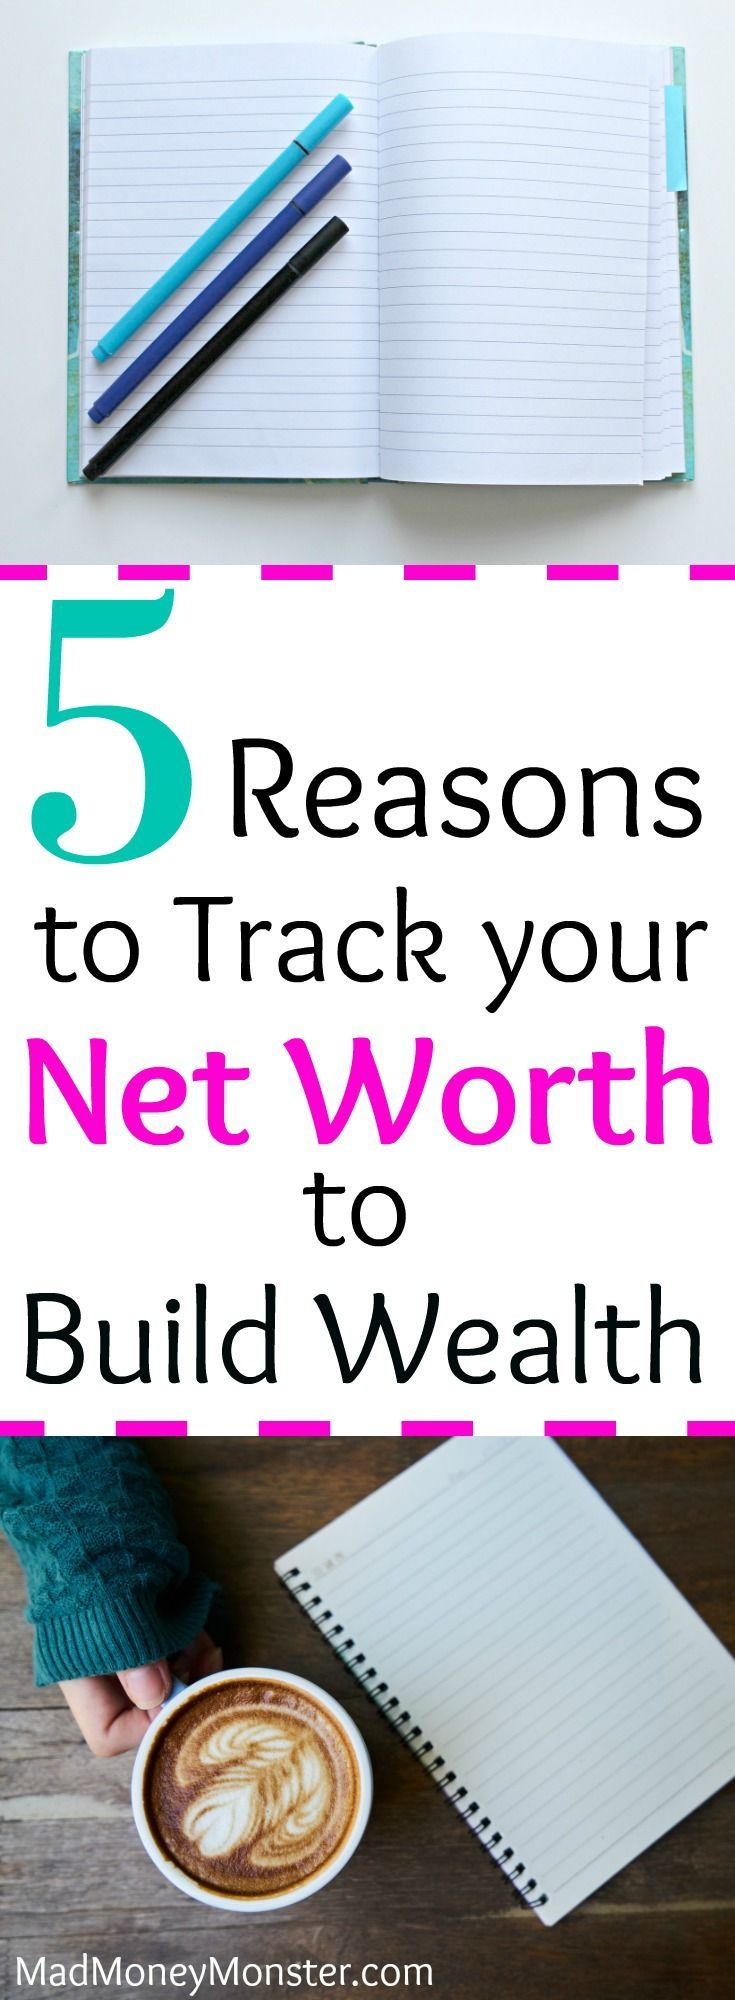 5 reasons you need to track your net worth to build wealth